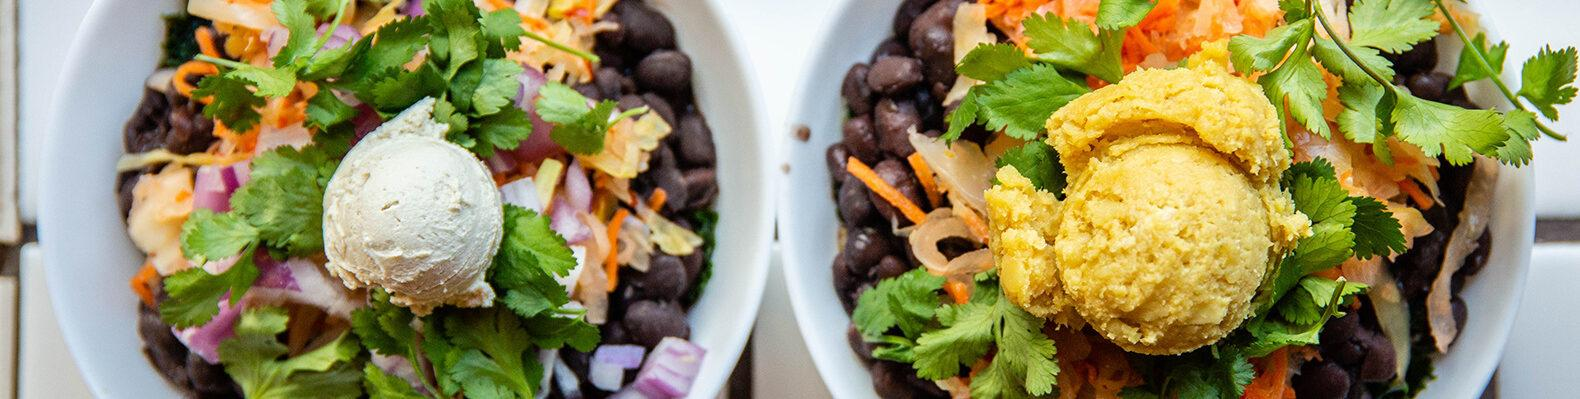 bowls of black beans and raw veggies